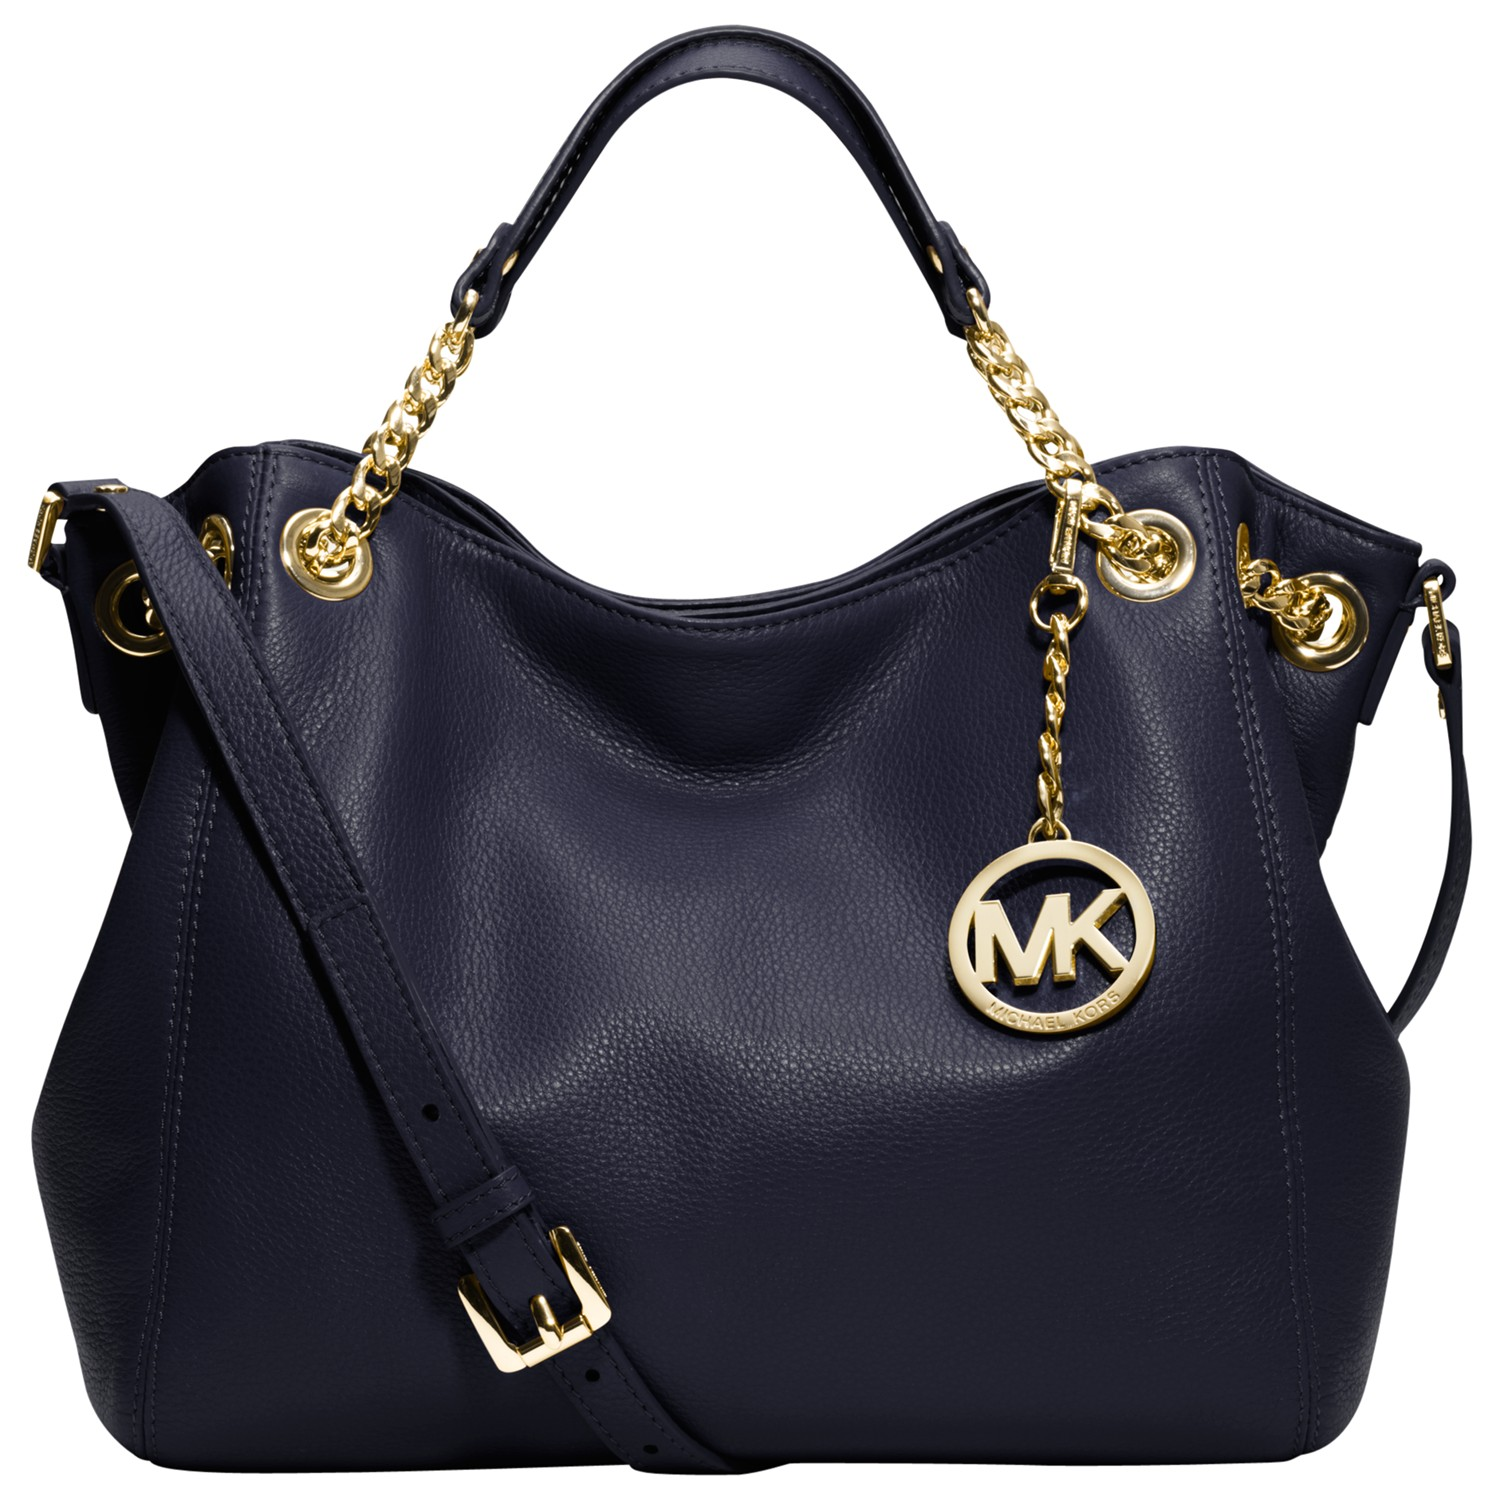 Cheap Michael Kor Handbags Up To 90% OFF Today, Secure Payment! Original Michael kors outlet online sale Have All New Michael Kors bags,Wallets and Purses For Pick.